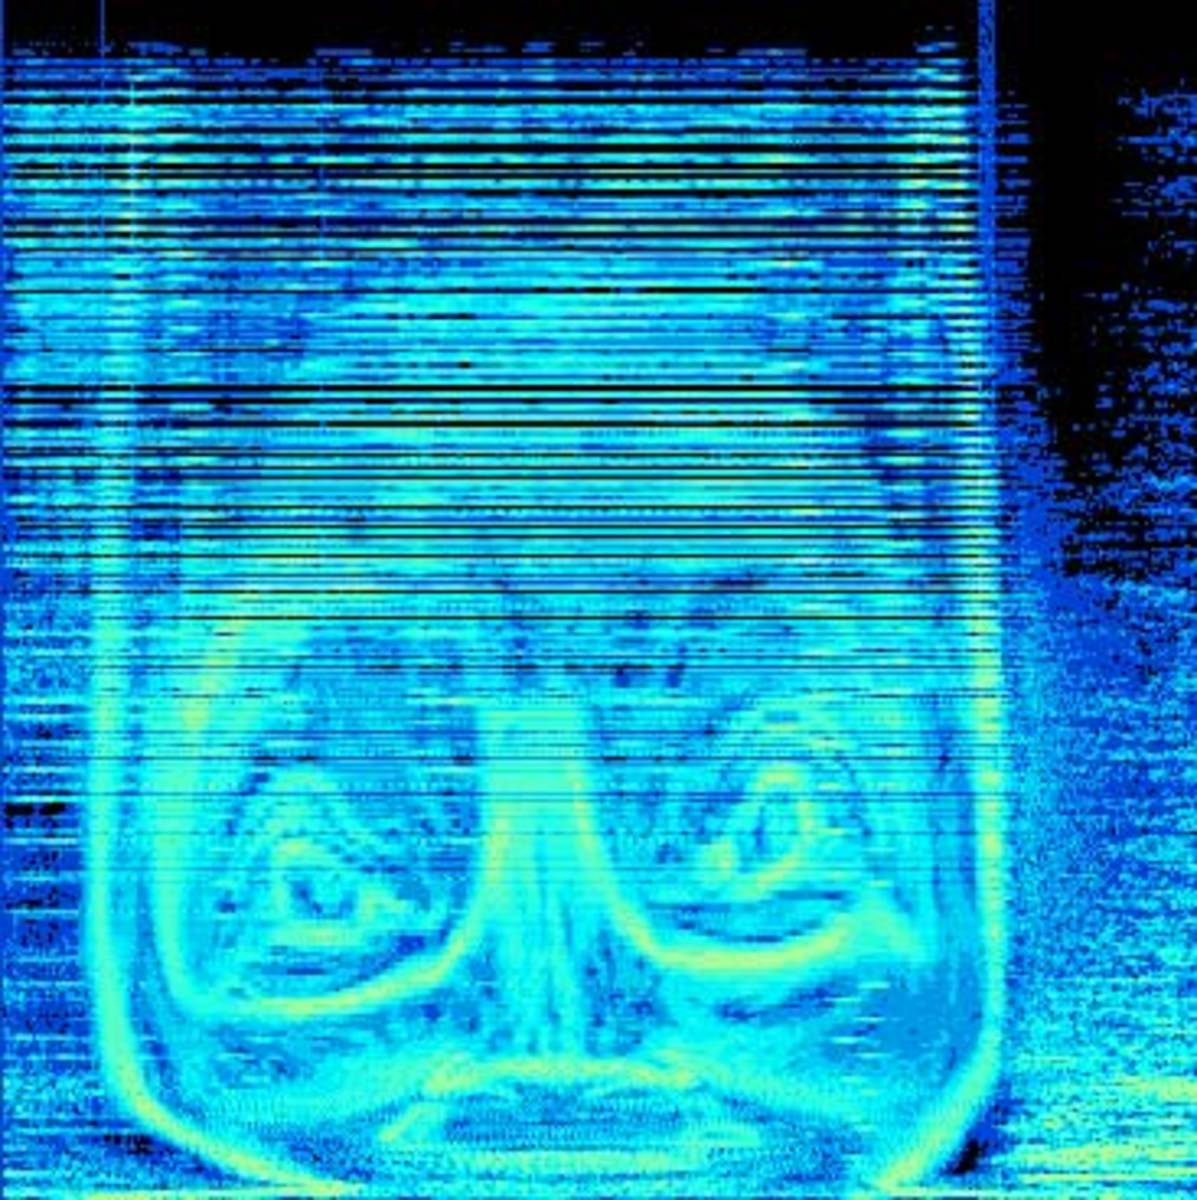 The Aphex Face: Visualizing The Sound Spectrum